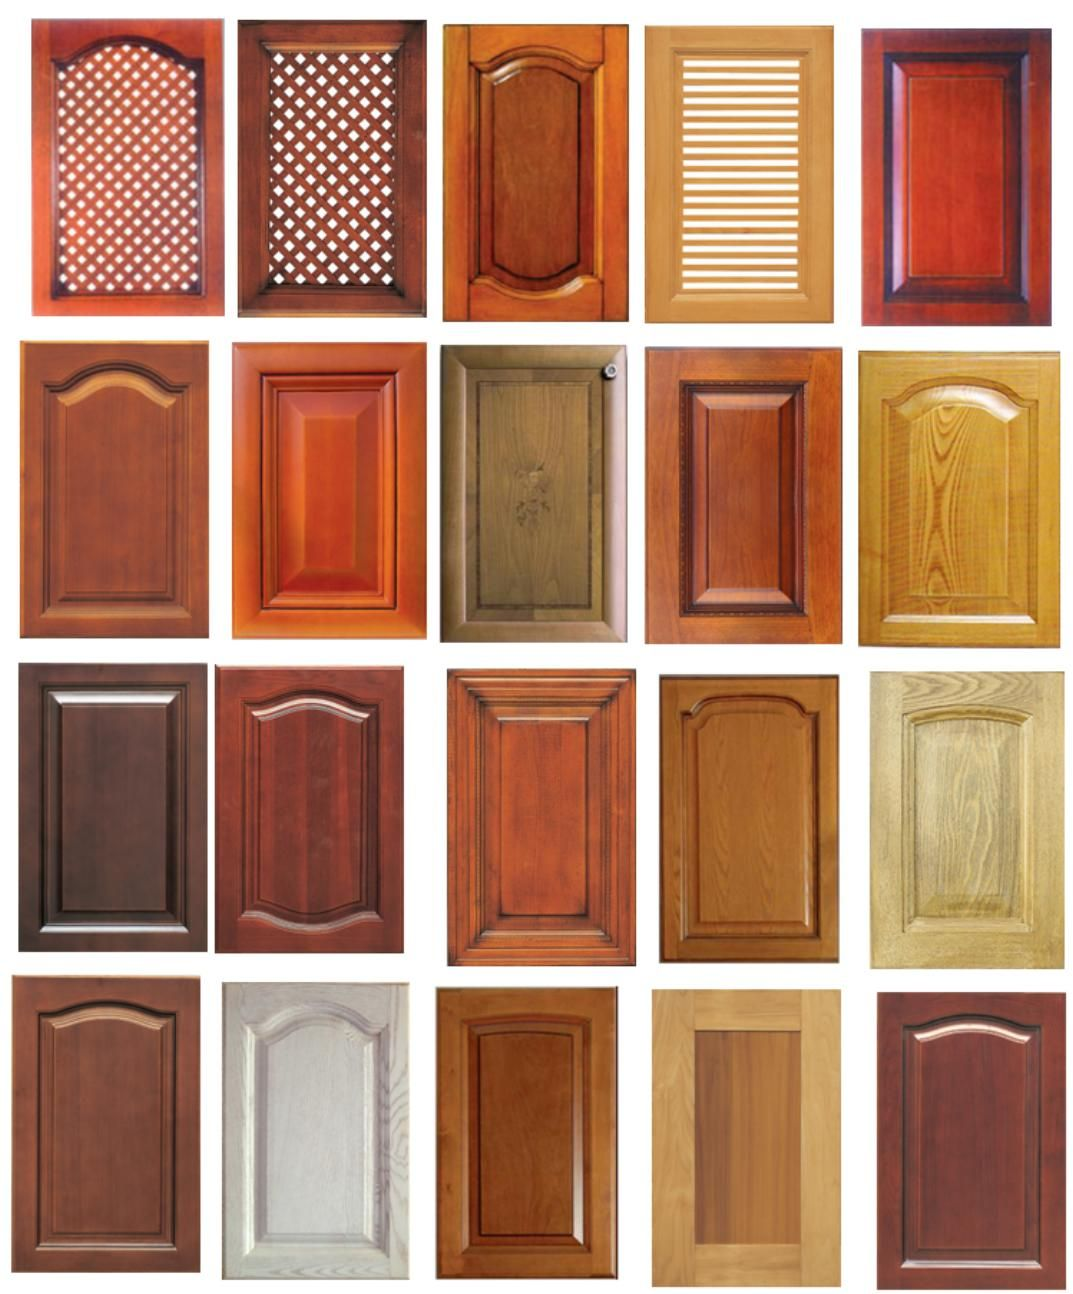 Solid Wood Kitchen Cabinet Door Designs Natural Component Stained Many Color Brown Purple White Cream Creation